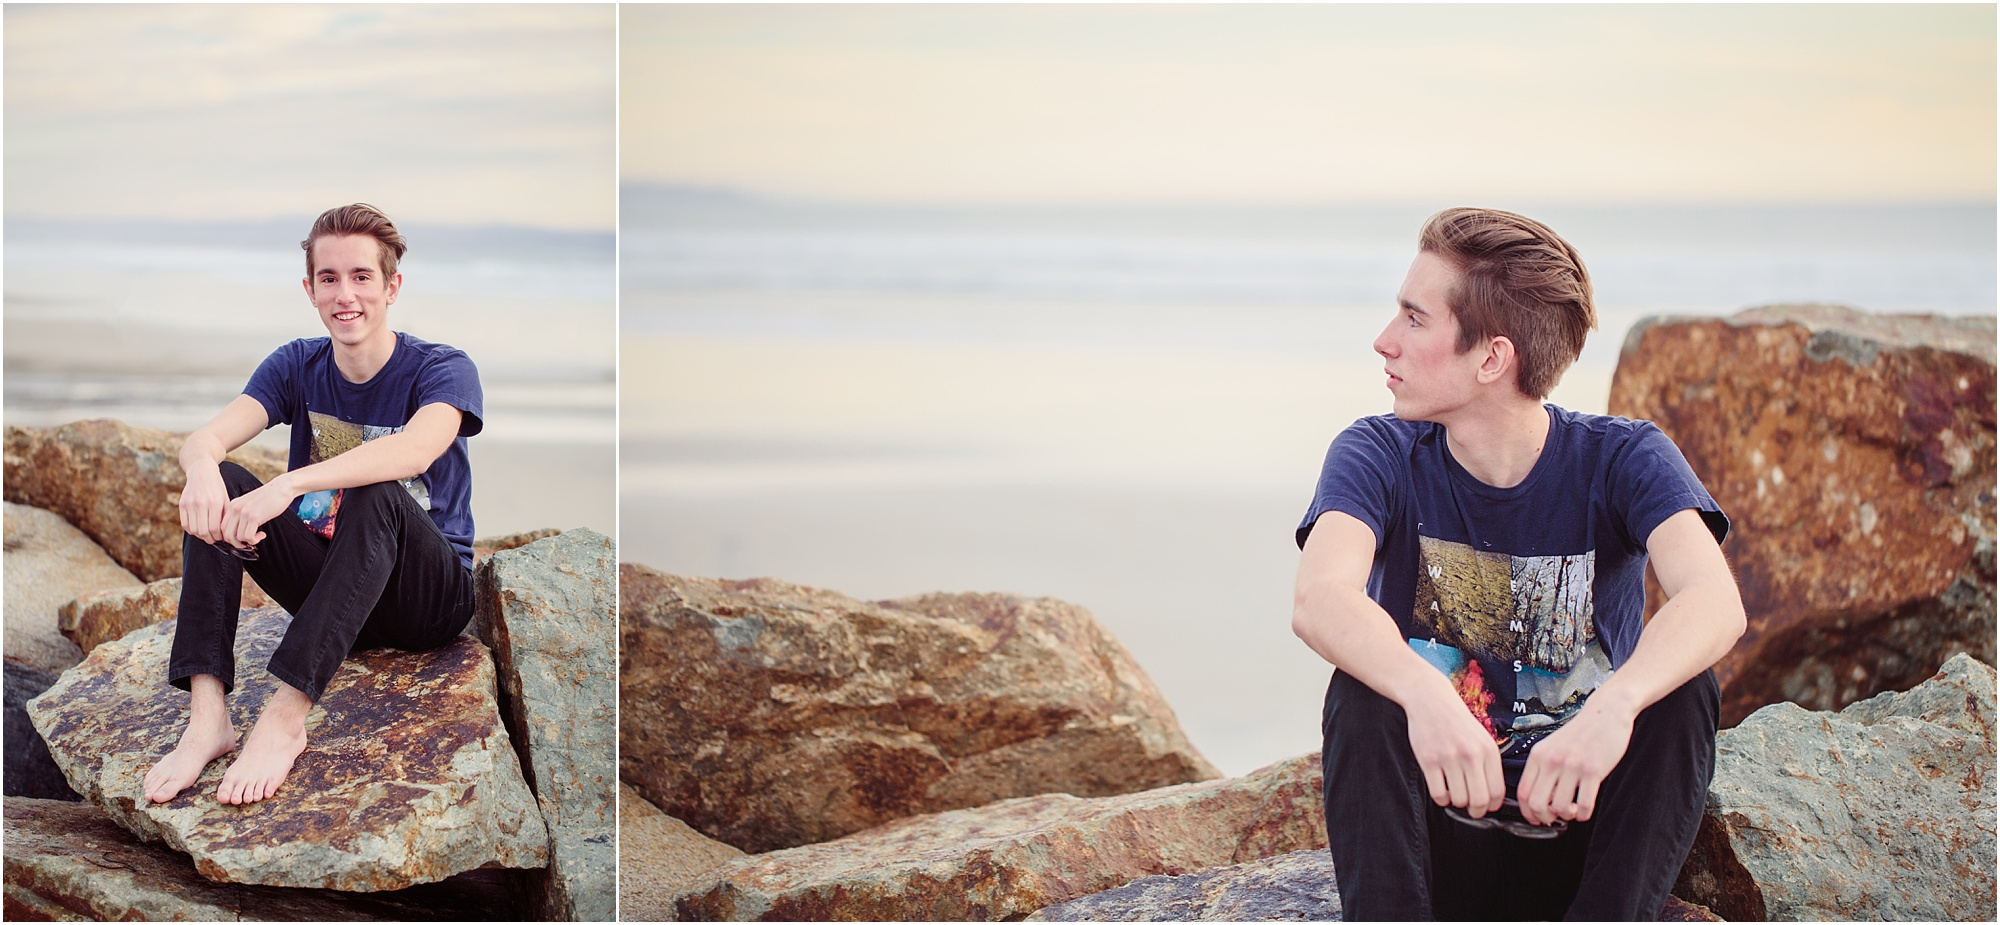 San Diego Senior Photographer | Beach Photography Coronado